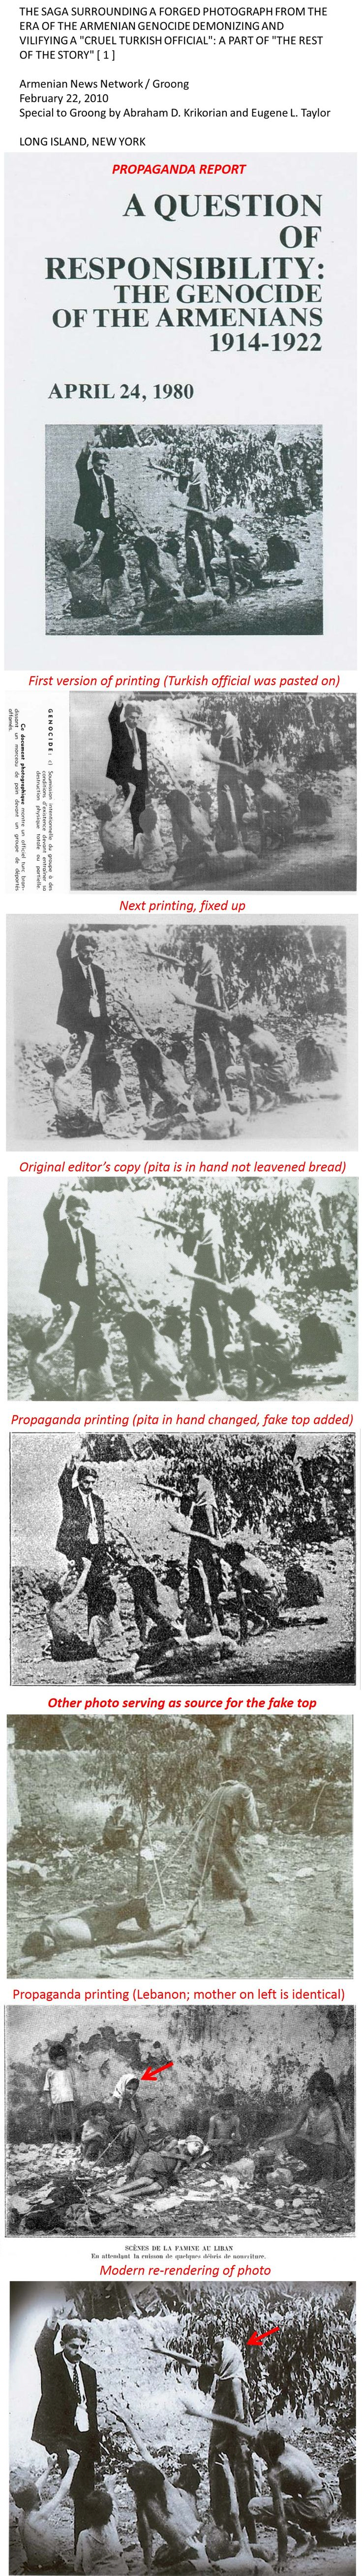 best images about n genocide adana syria an important essay to review on the negative role of propaganda in the n